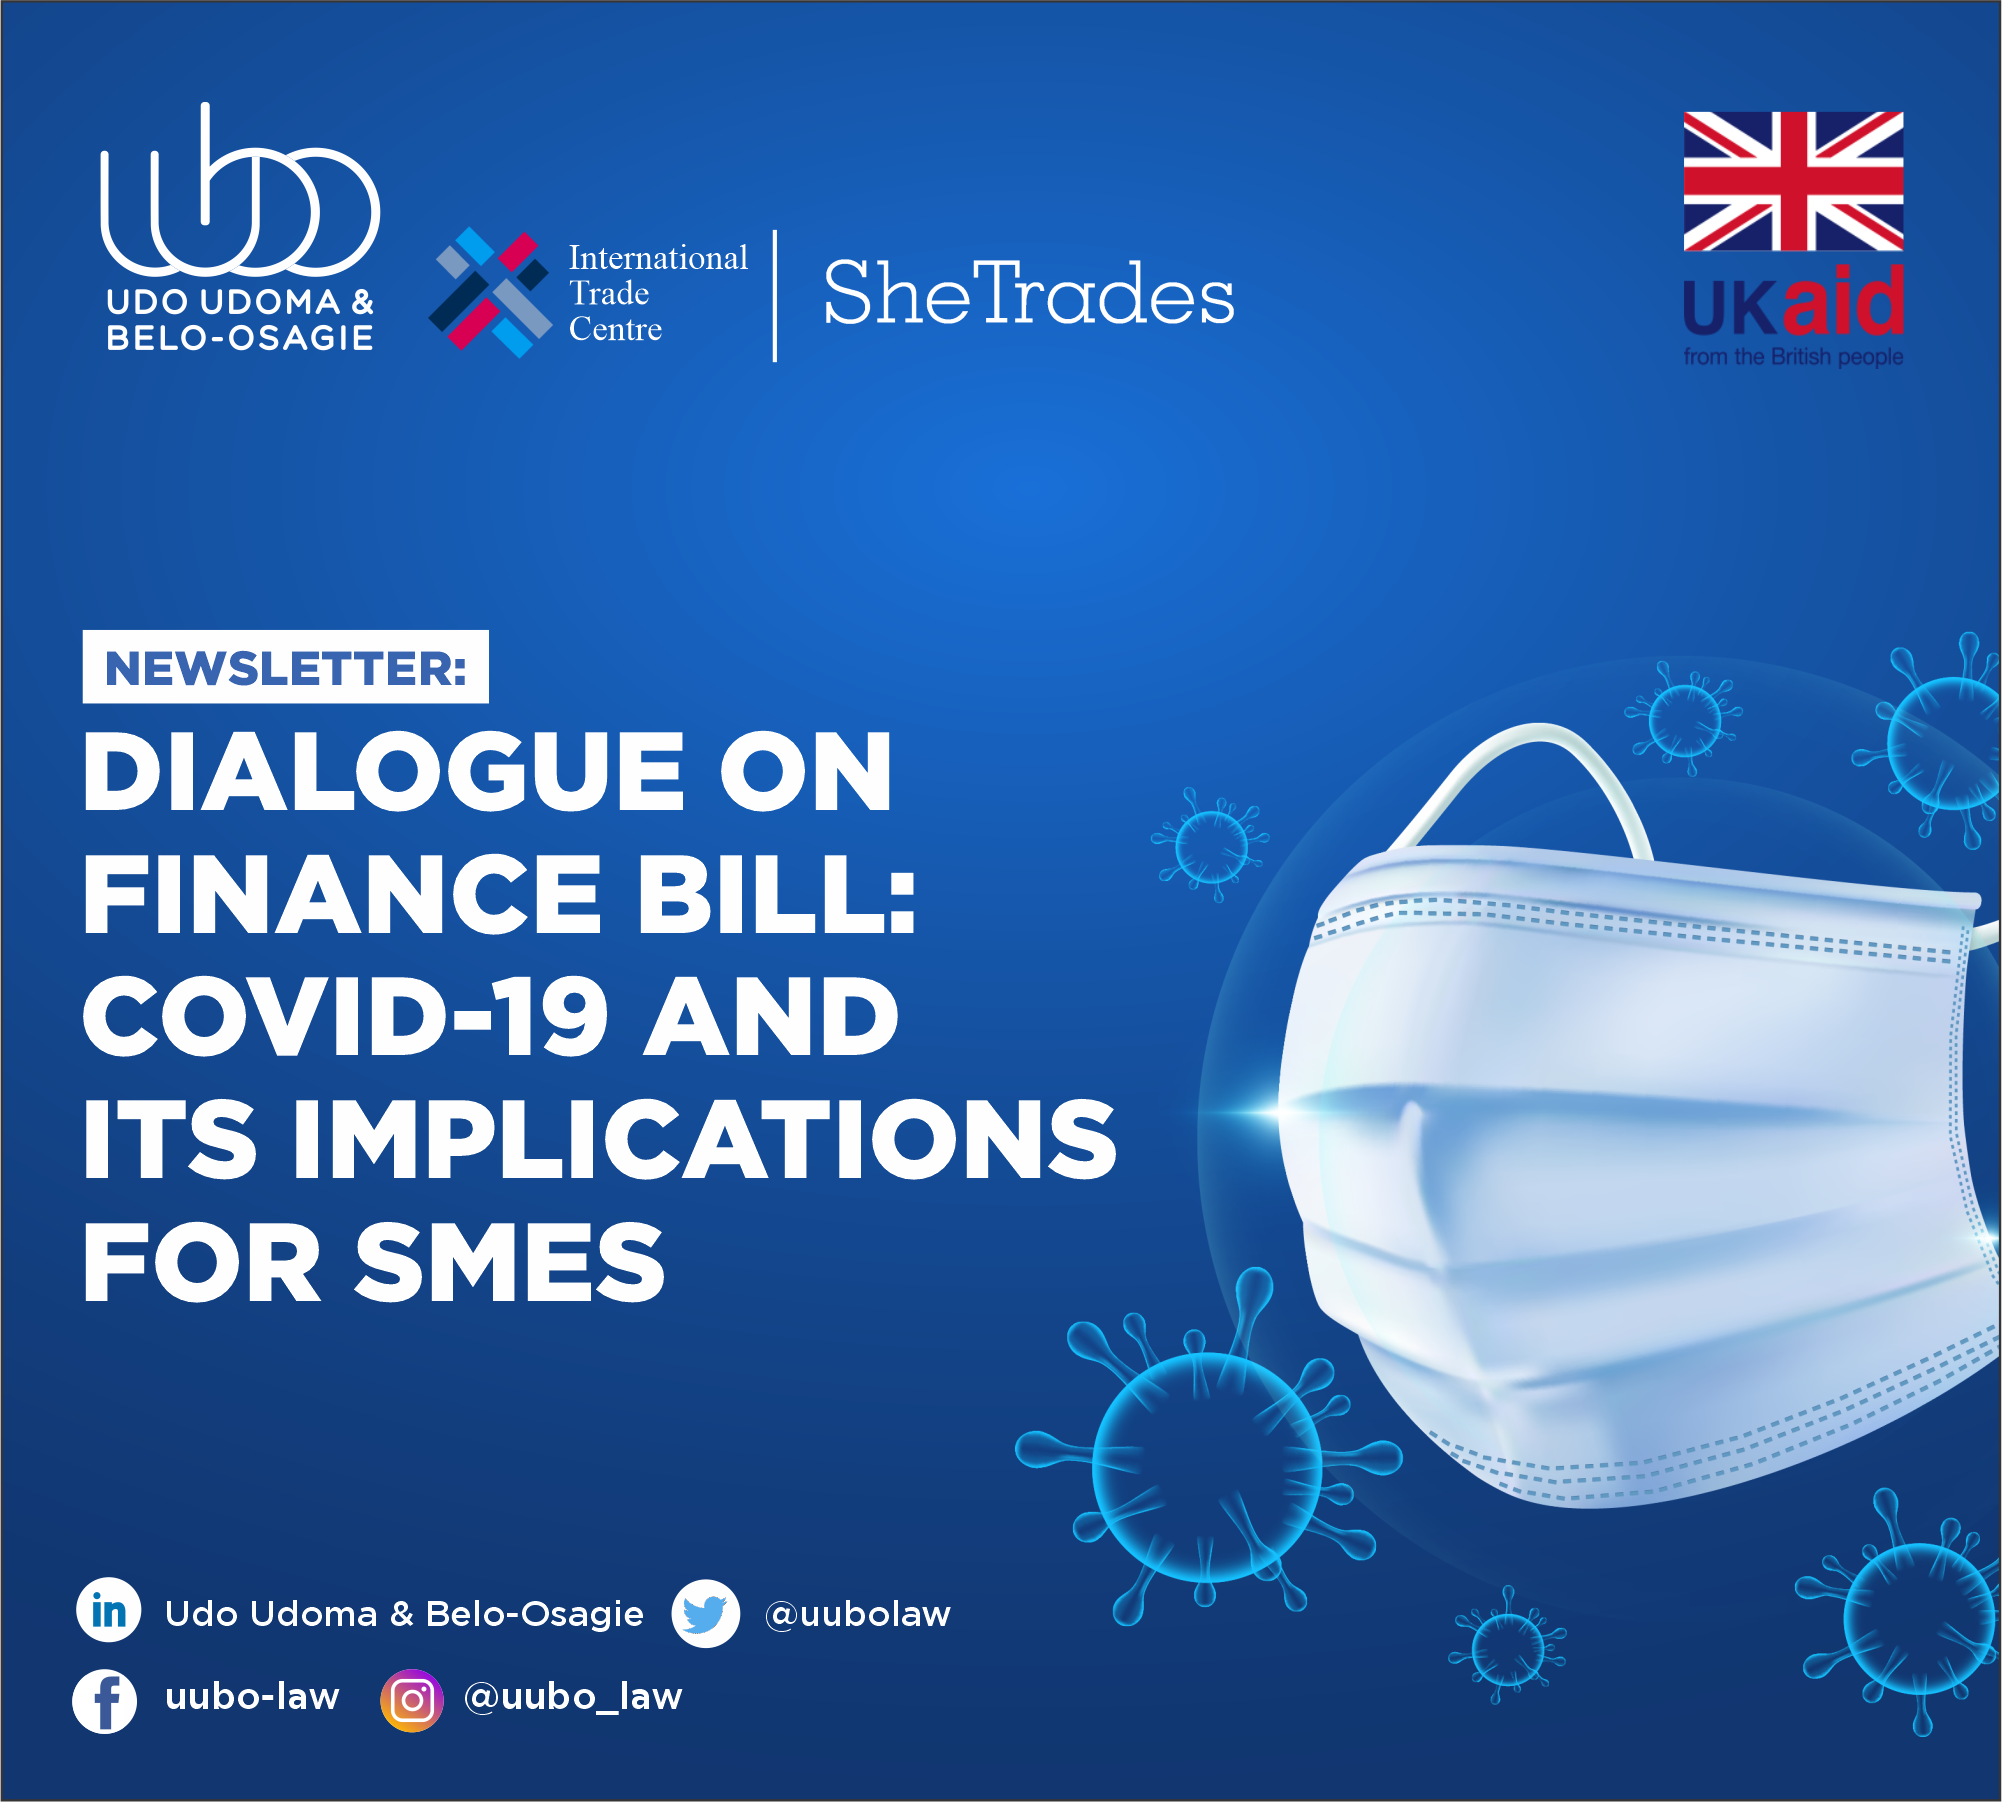 Draft Newsletter Dialogue On Finance Bill Covid 19 And Its Implications For Smes (1)